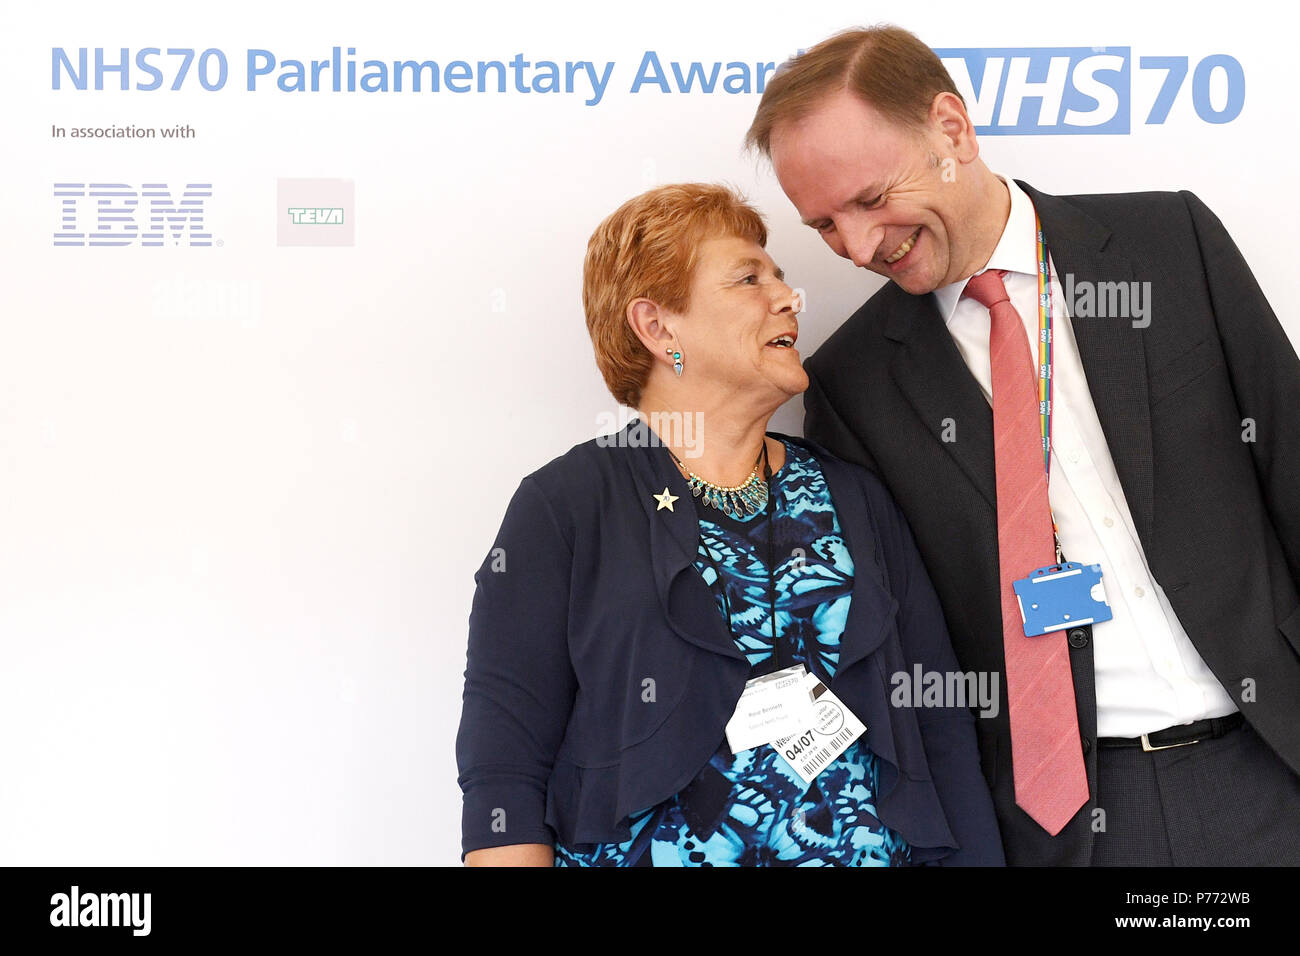 Rose Bennett of Solent NHS Trust is awarded a Lifetime Achievement Award during the NHS70 parliamentary awards for the 70th anniversary of the NHS at the House of Commons in Westminster, London. - Stock Image